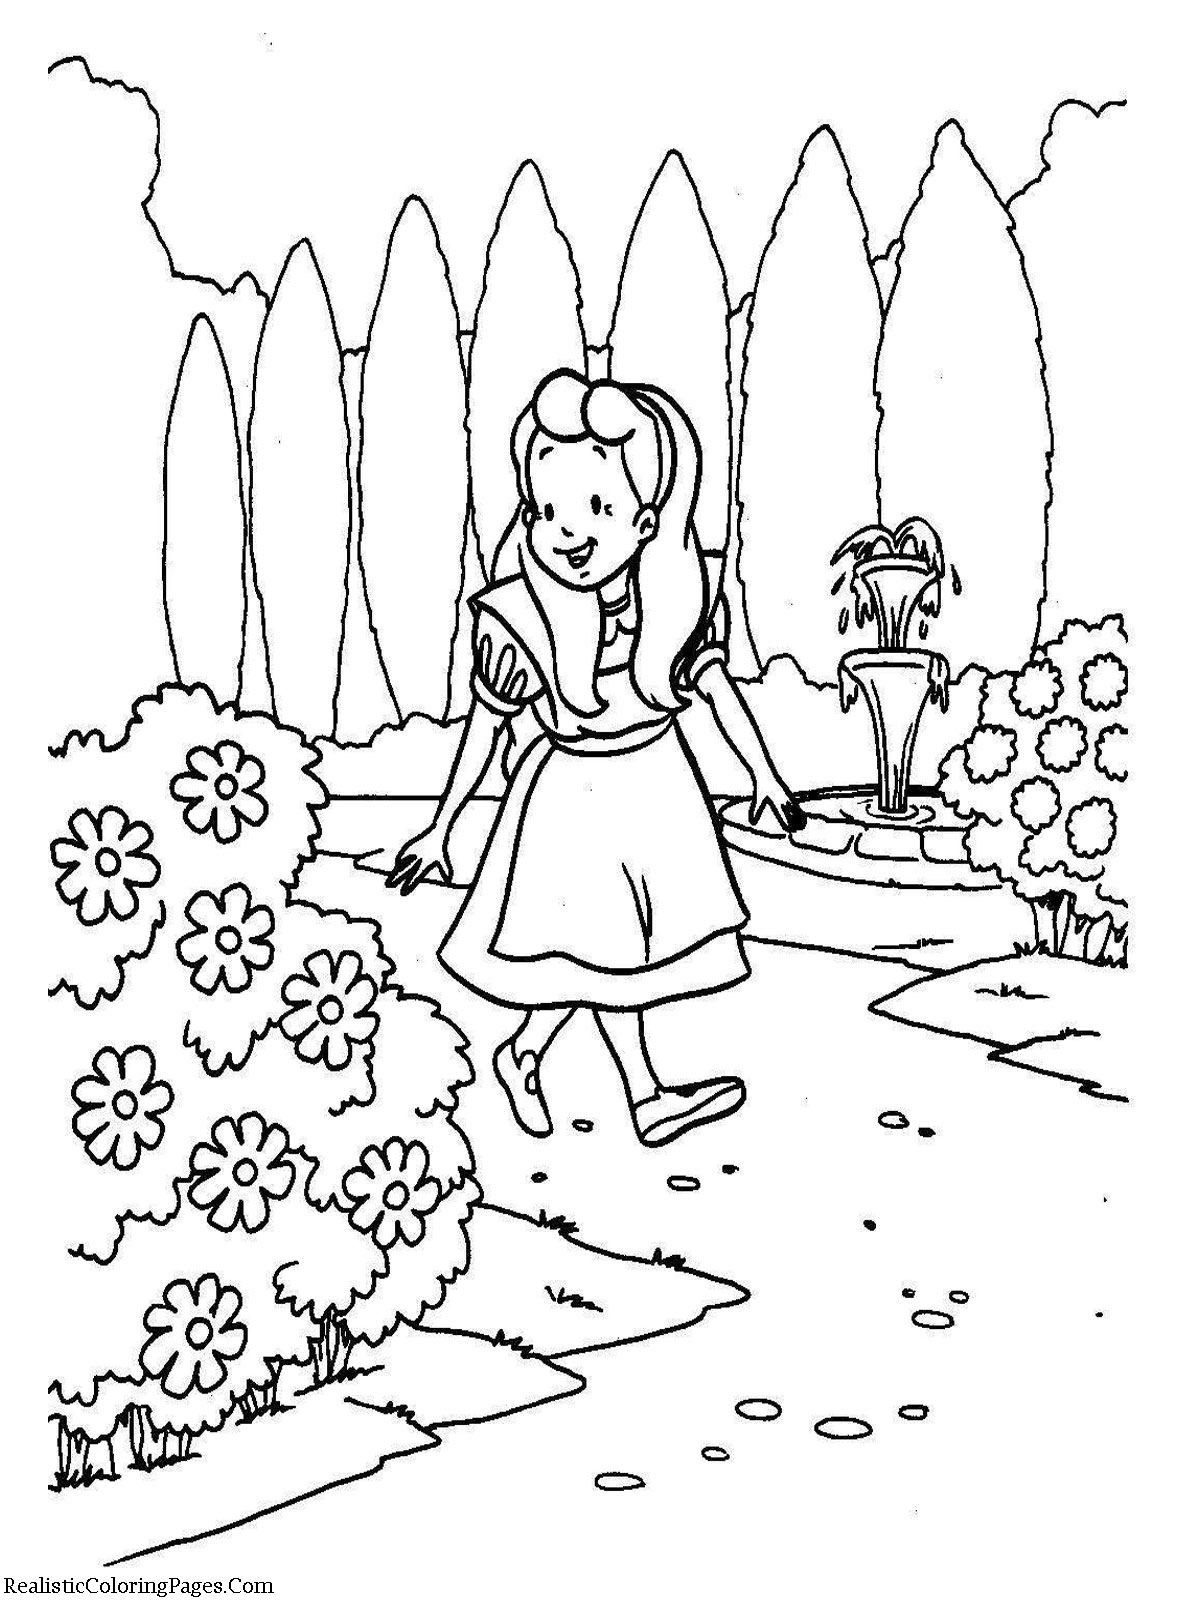 Alice In Wonderland Cartoon Coloring Pages